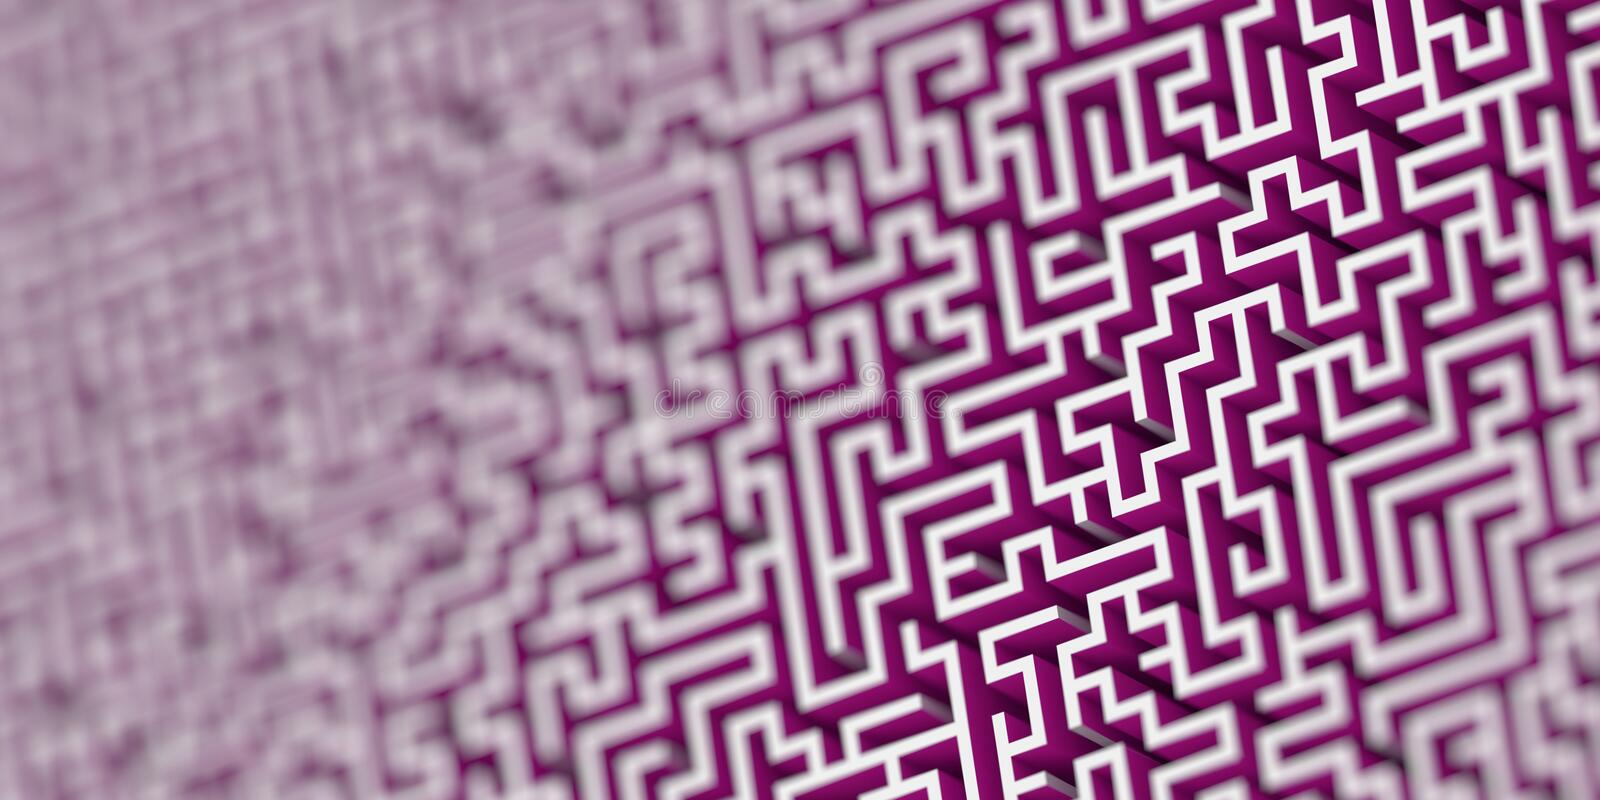 Maze background, risk and solution concepts stock photo